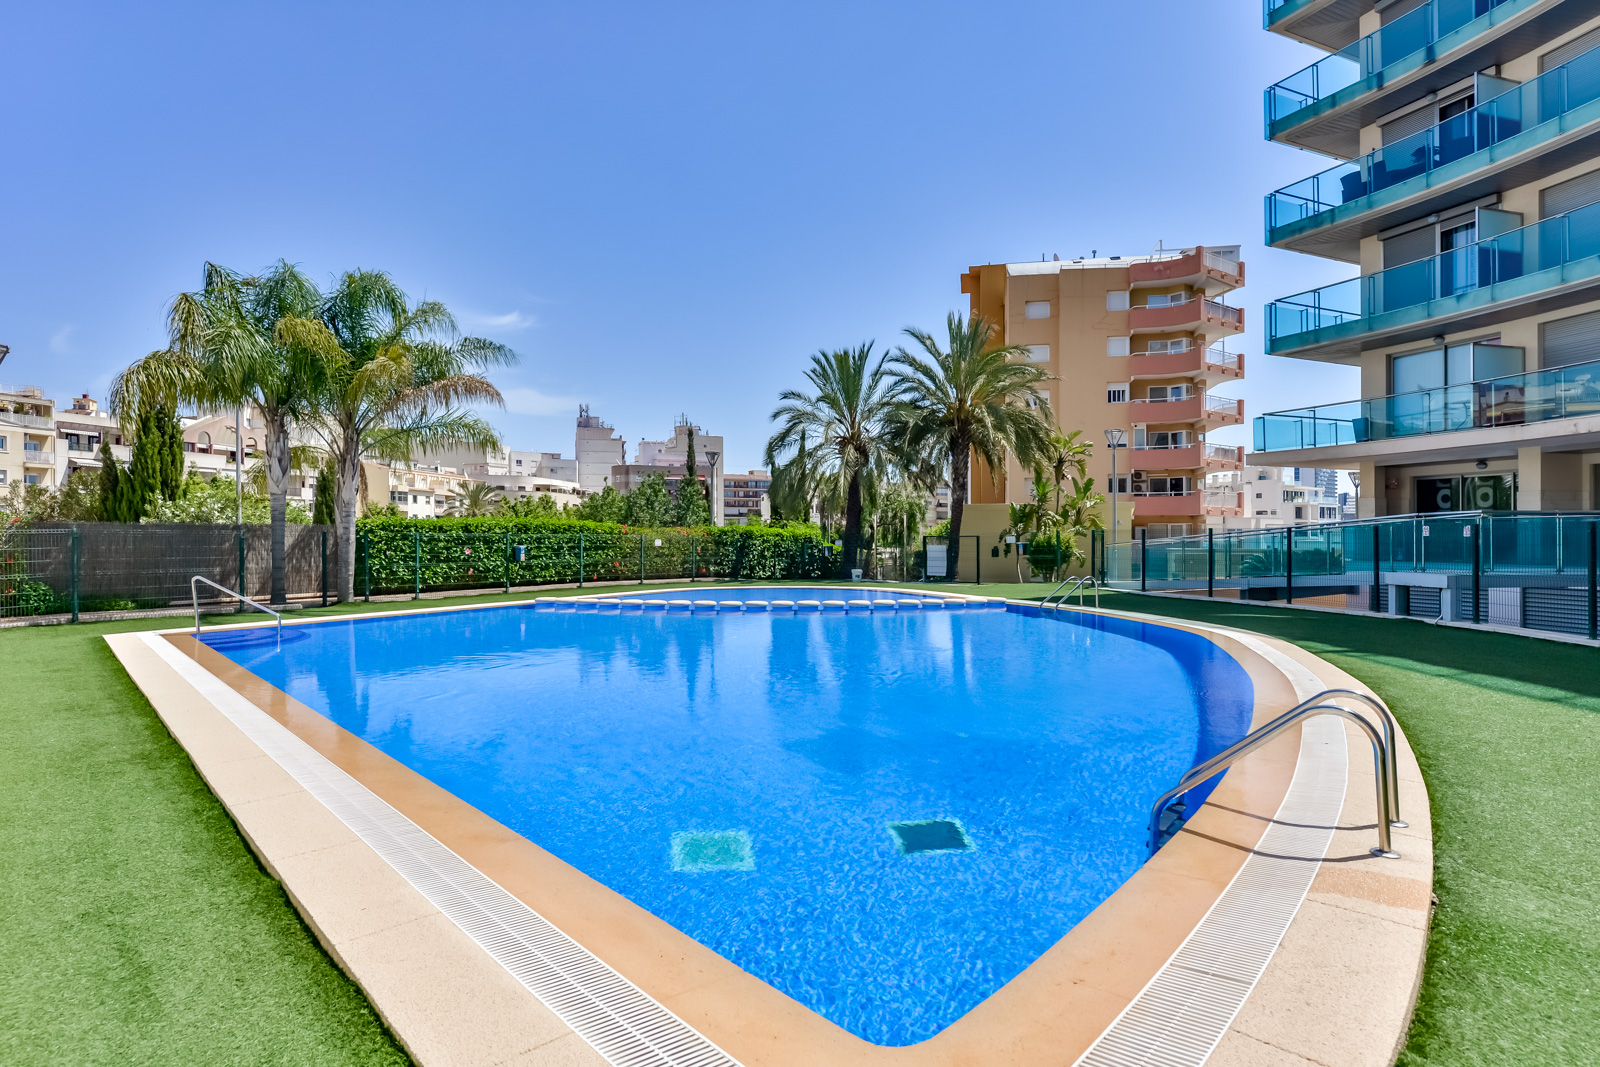 Apartamento Borumbot 26, Apartment  with communal pool in Calpe, on the Costa Blanca, Spain for 6 persons...